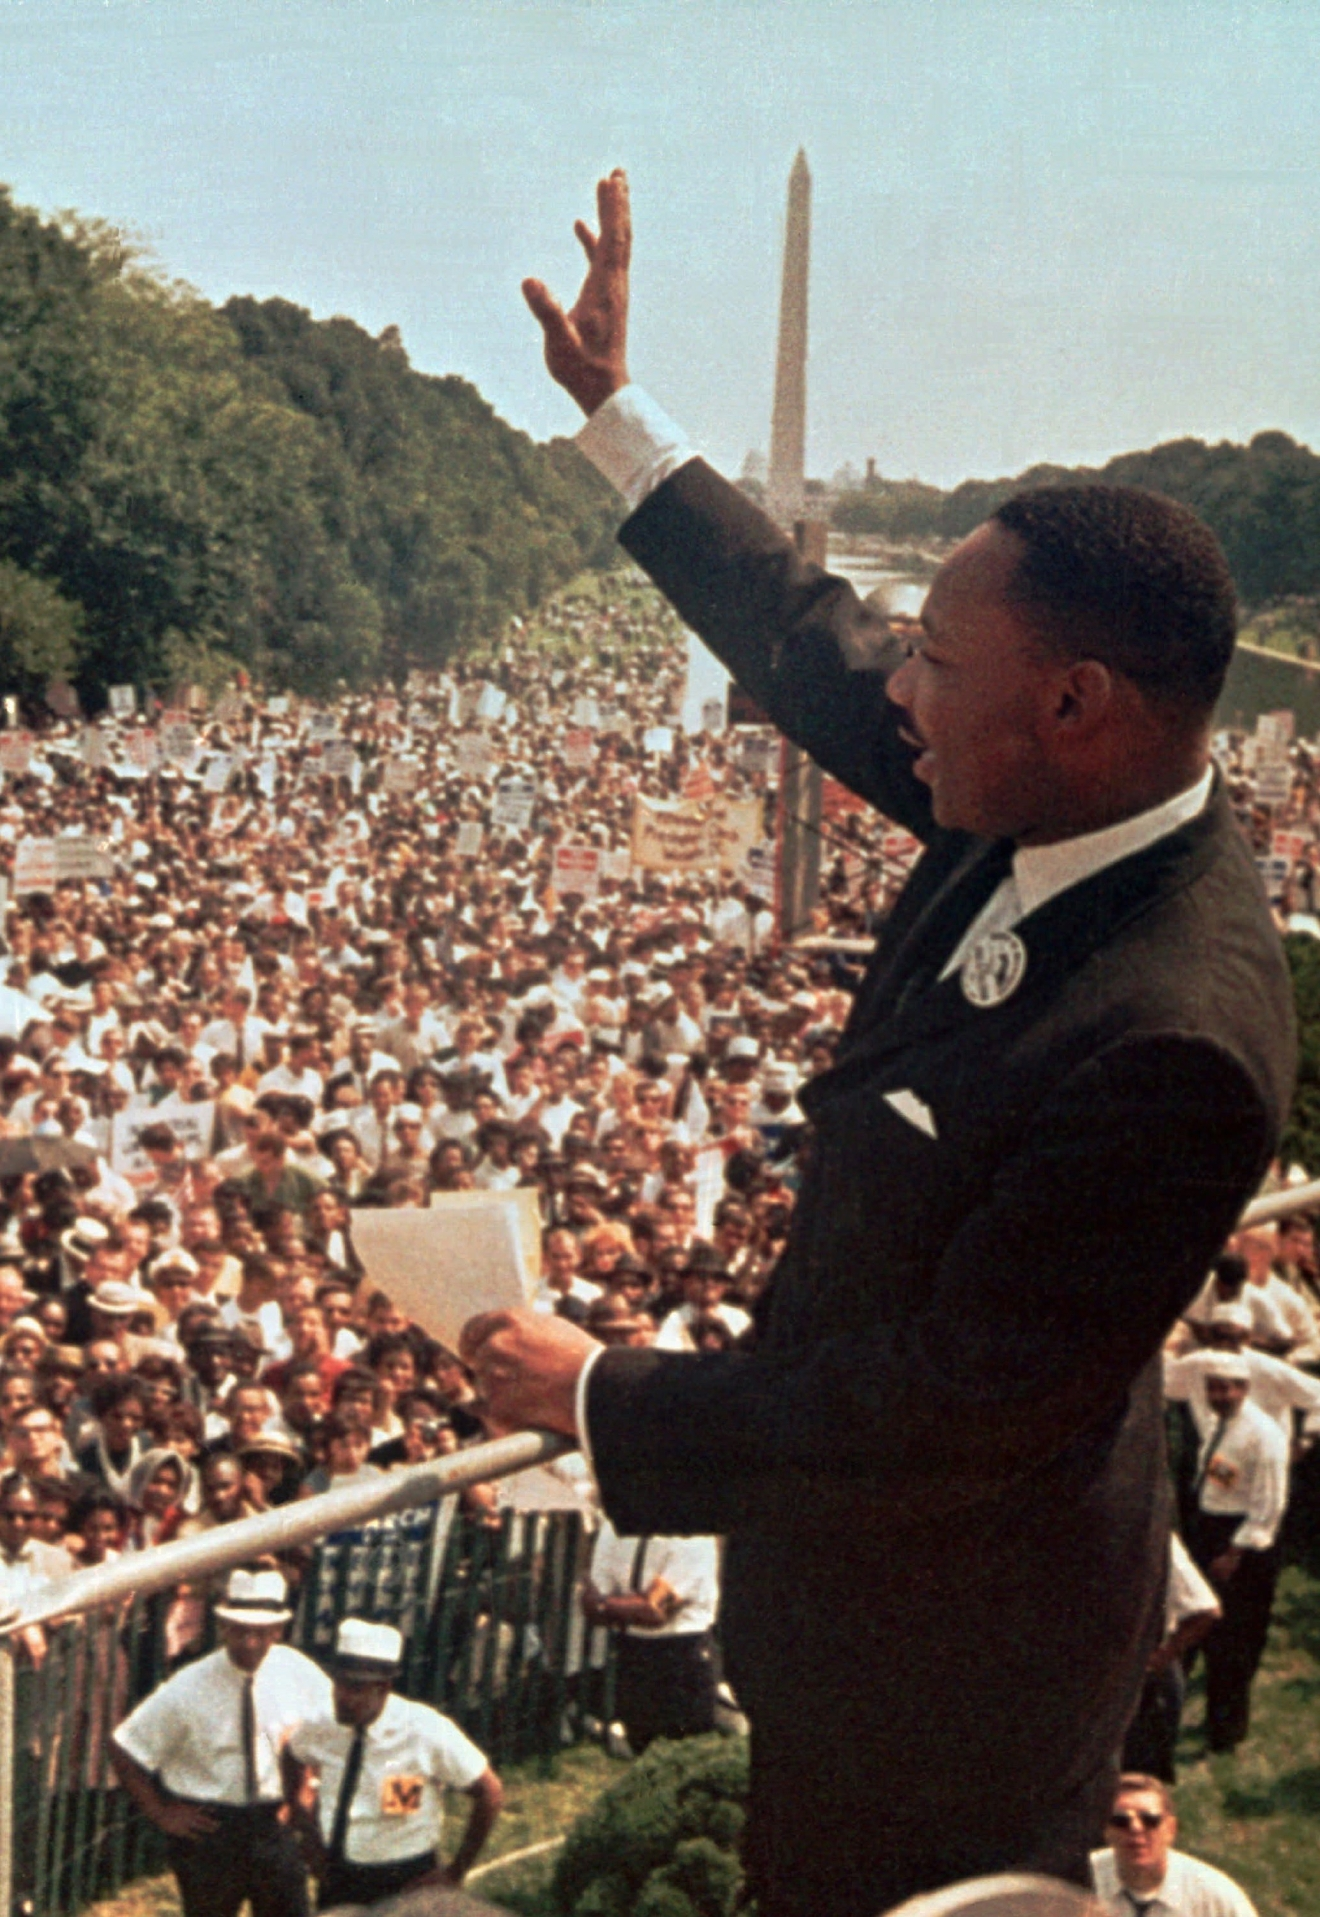 "The Rev. Martin Luther King Jr. acknowledges the crowd at the Lincoln Memorial for his ""I Have a Dream"" speech during the March on Washington, D.C.,  on Aug. 28, 1963.  The march was organized  to support proposed civil rights legislation and end segregation.  King founded the Southern Christian Leadership Conference in 1957, advocating nonviolent action against America's racial inequality.  Awarded the Nobel Peace Prize in 1964, King was assassinated in Memphis, Tenn., in 1968.   (AP Photo)"